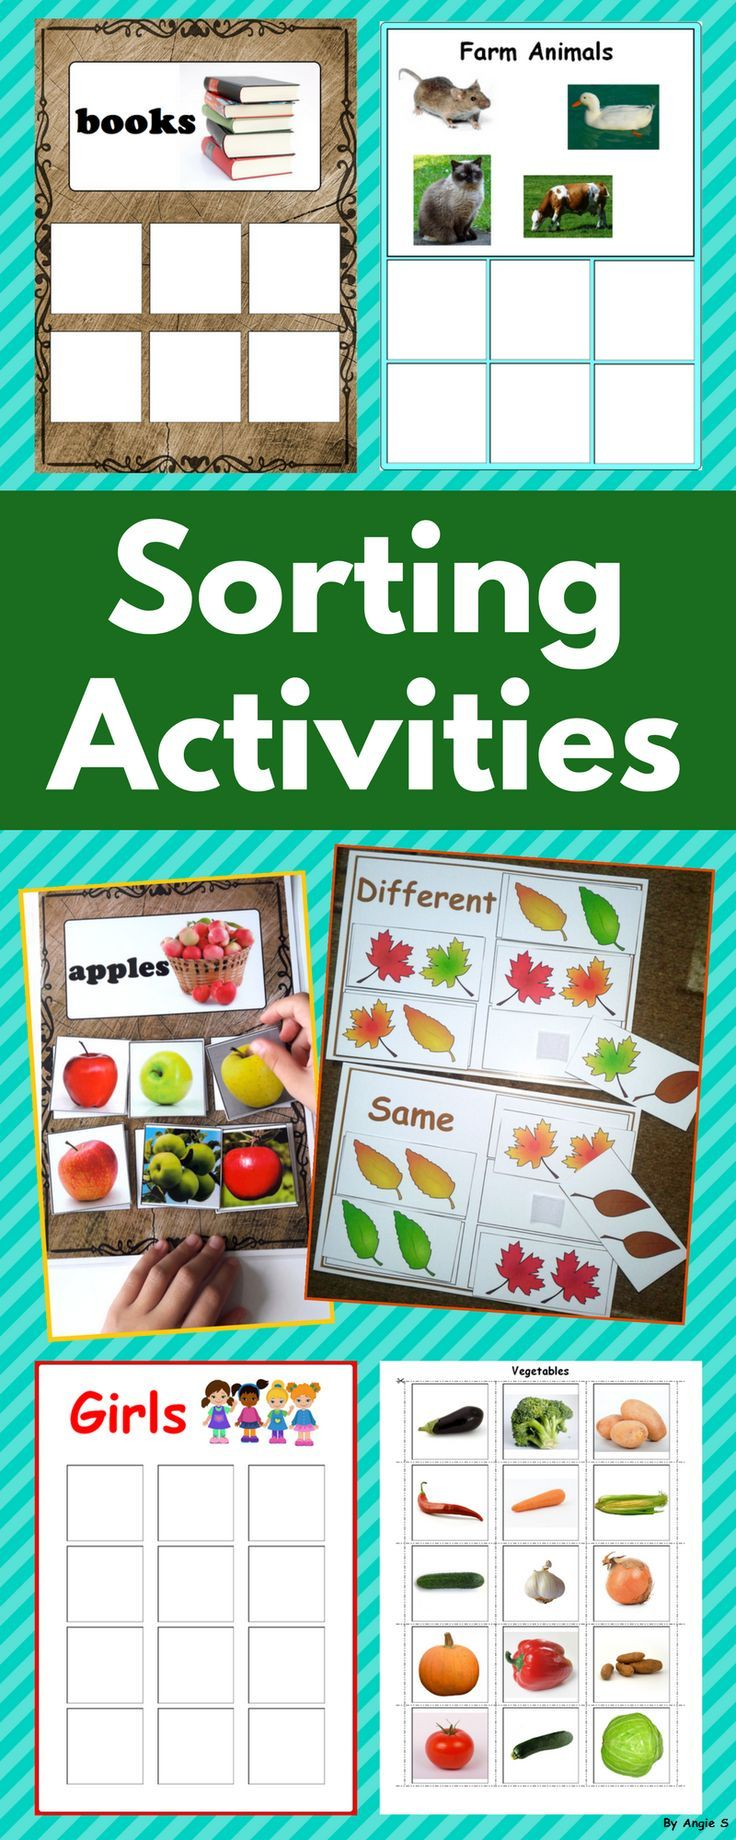 Sorting Activities Bundle for Special Education and Speech Therapy Set 1. This Bundle includes a lot of engaging activities for your students. My son adores them all! They will be very helpful if you use them for Autism, Special Ed, Occupational Therapy, Speech Therapy, ABA Therapy, TEACCH Therapy! #sorting #autism #speechtherapy #angies #sped #activities #kindergarten #bundle